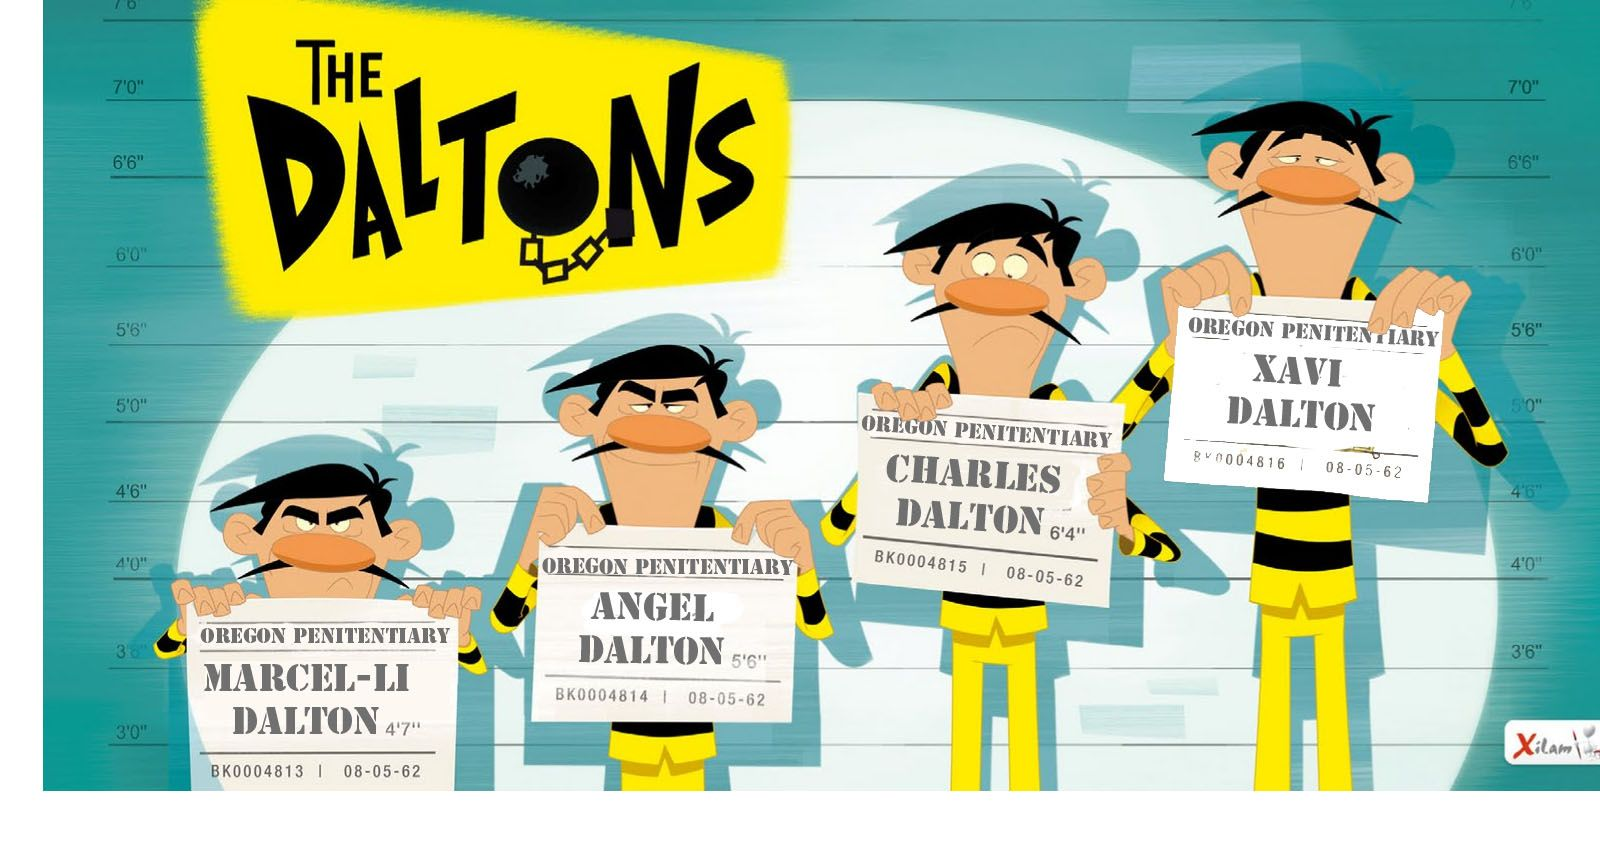 The Daltons Figurin Estampado Illustration